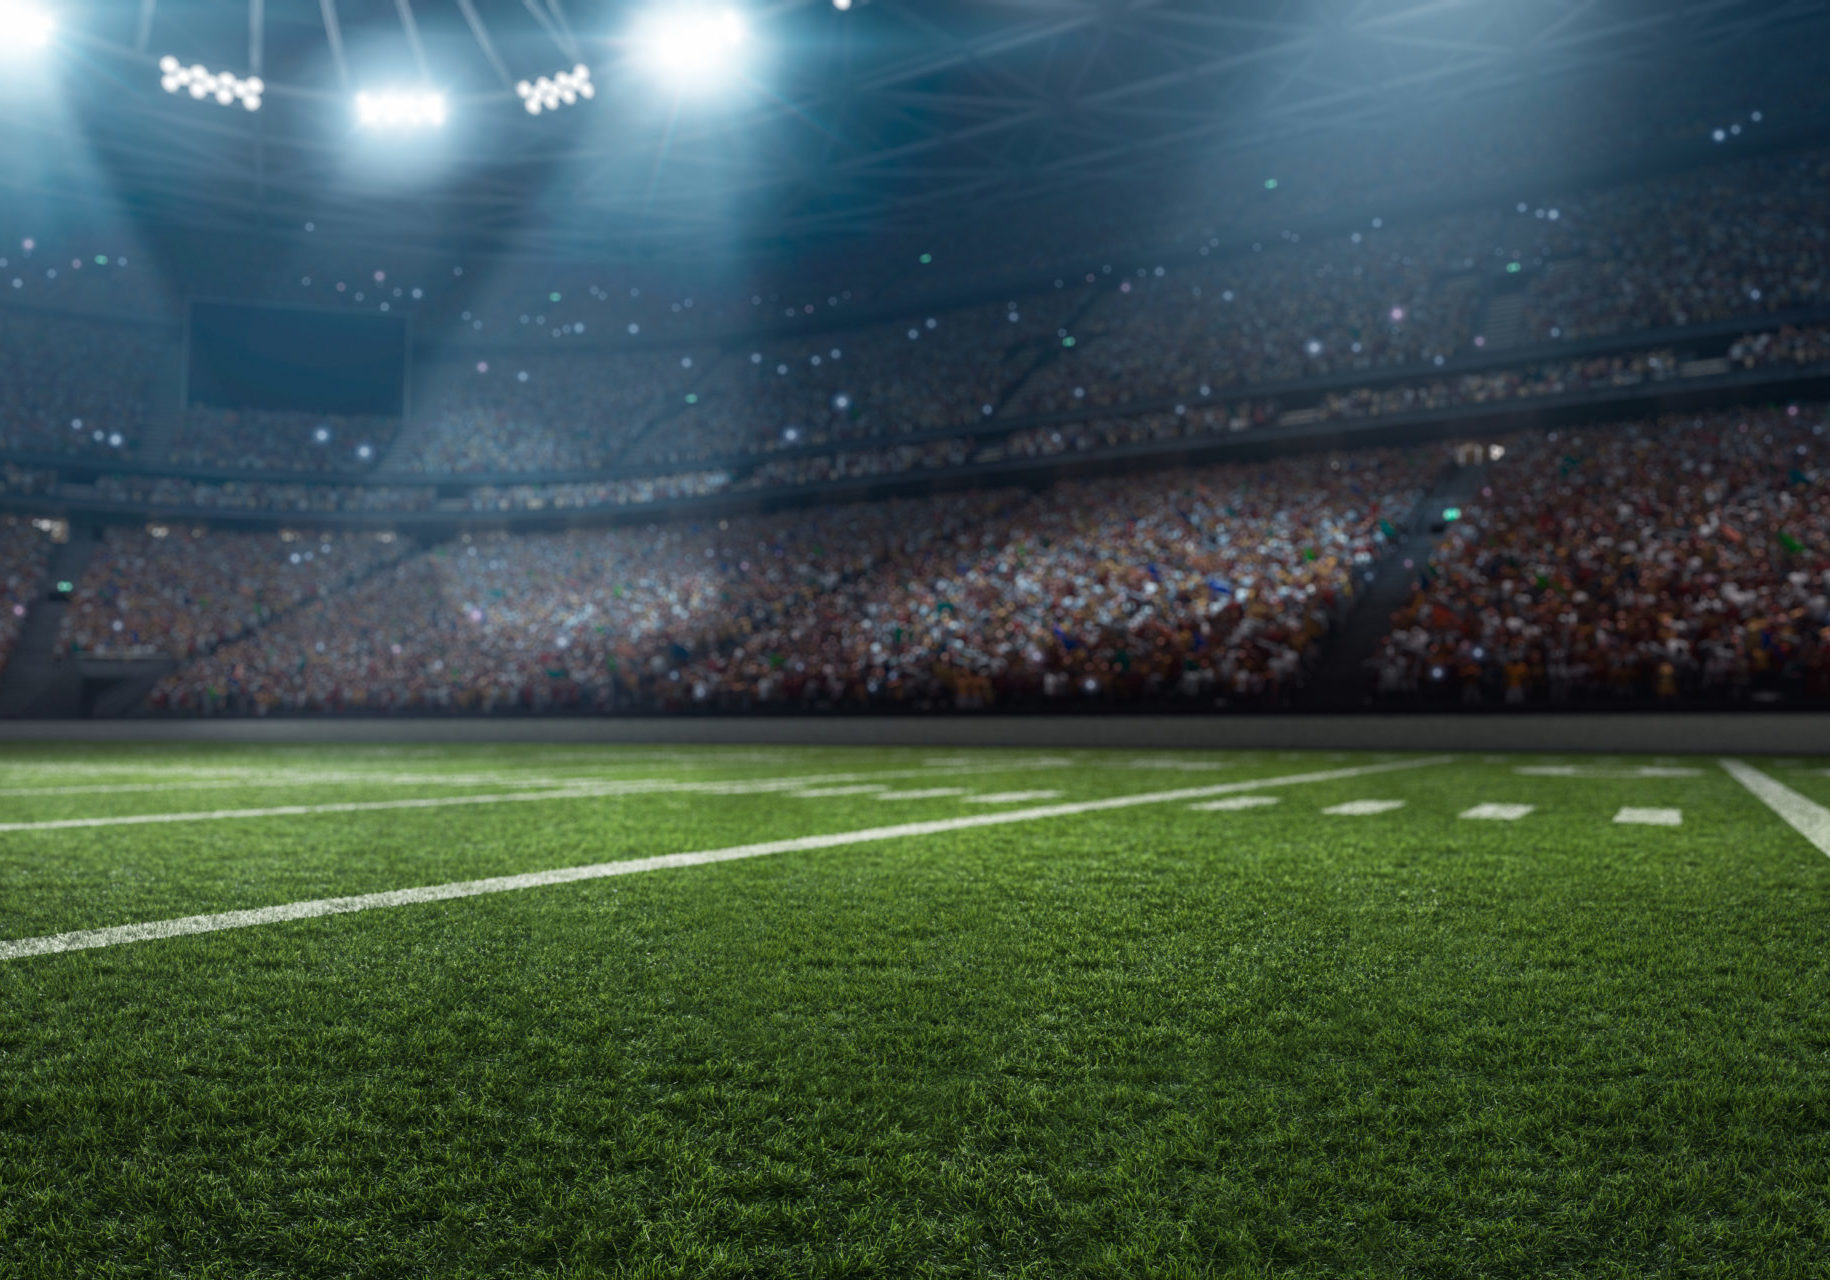 Dramatic,3d,Professional,American,Football,Arena,With,Green,Grass,And